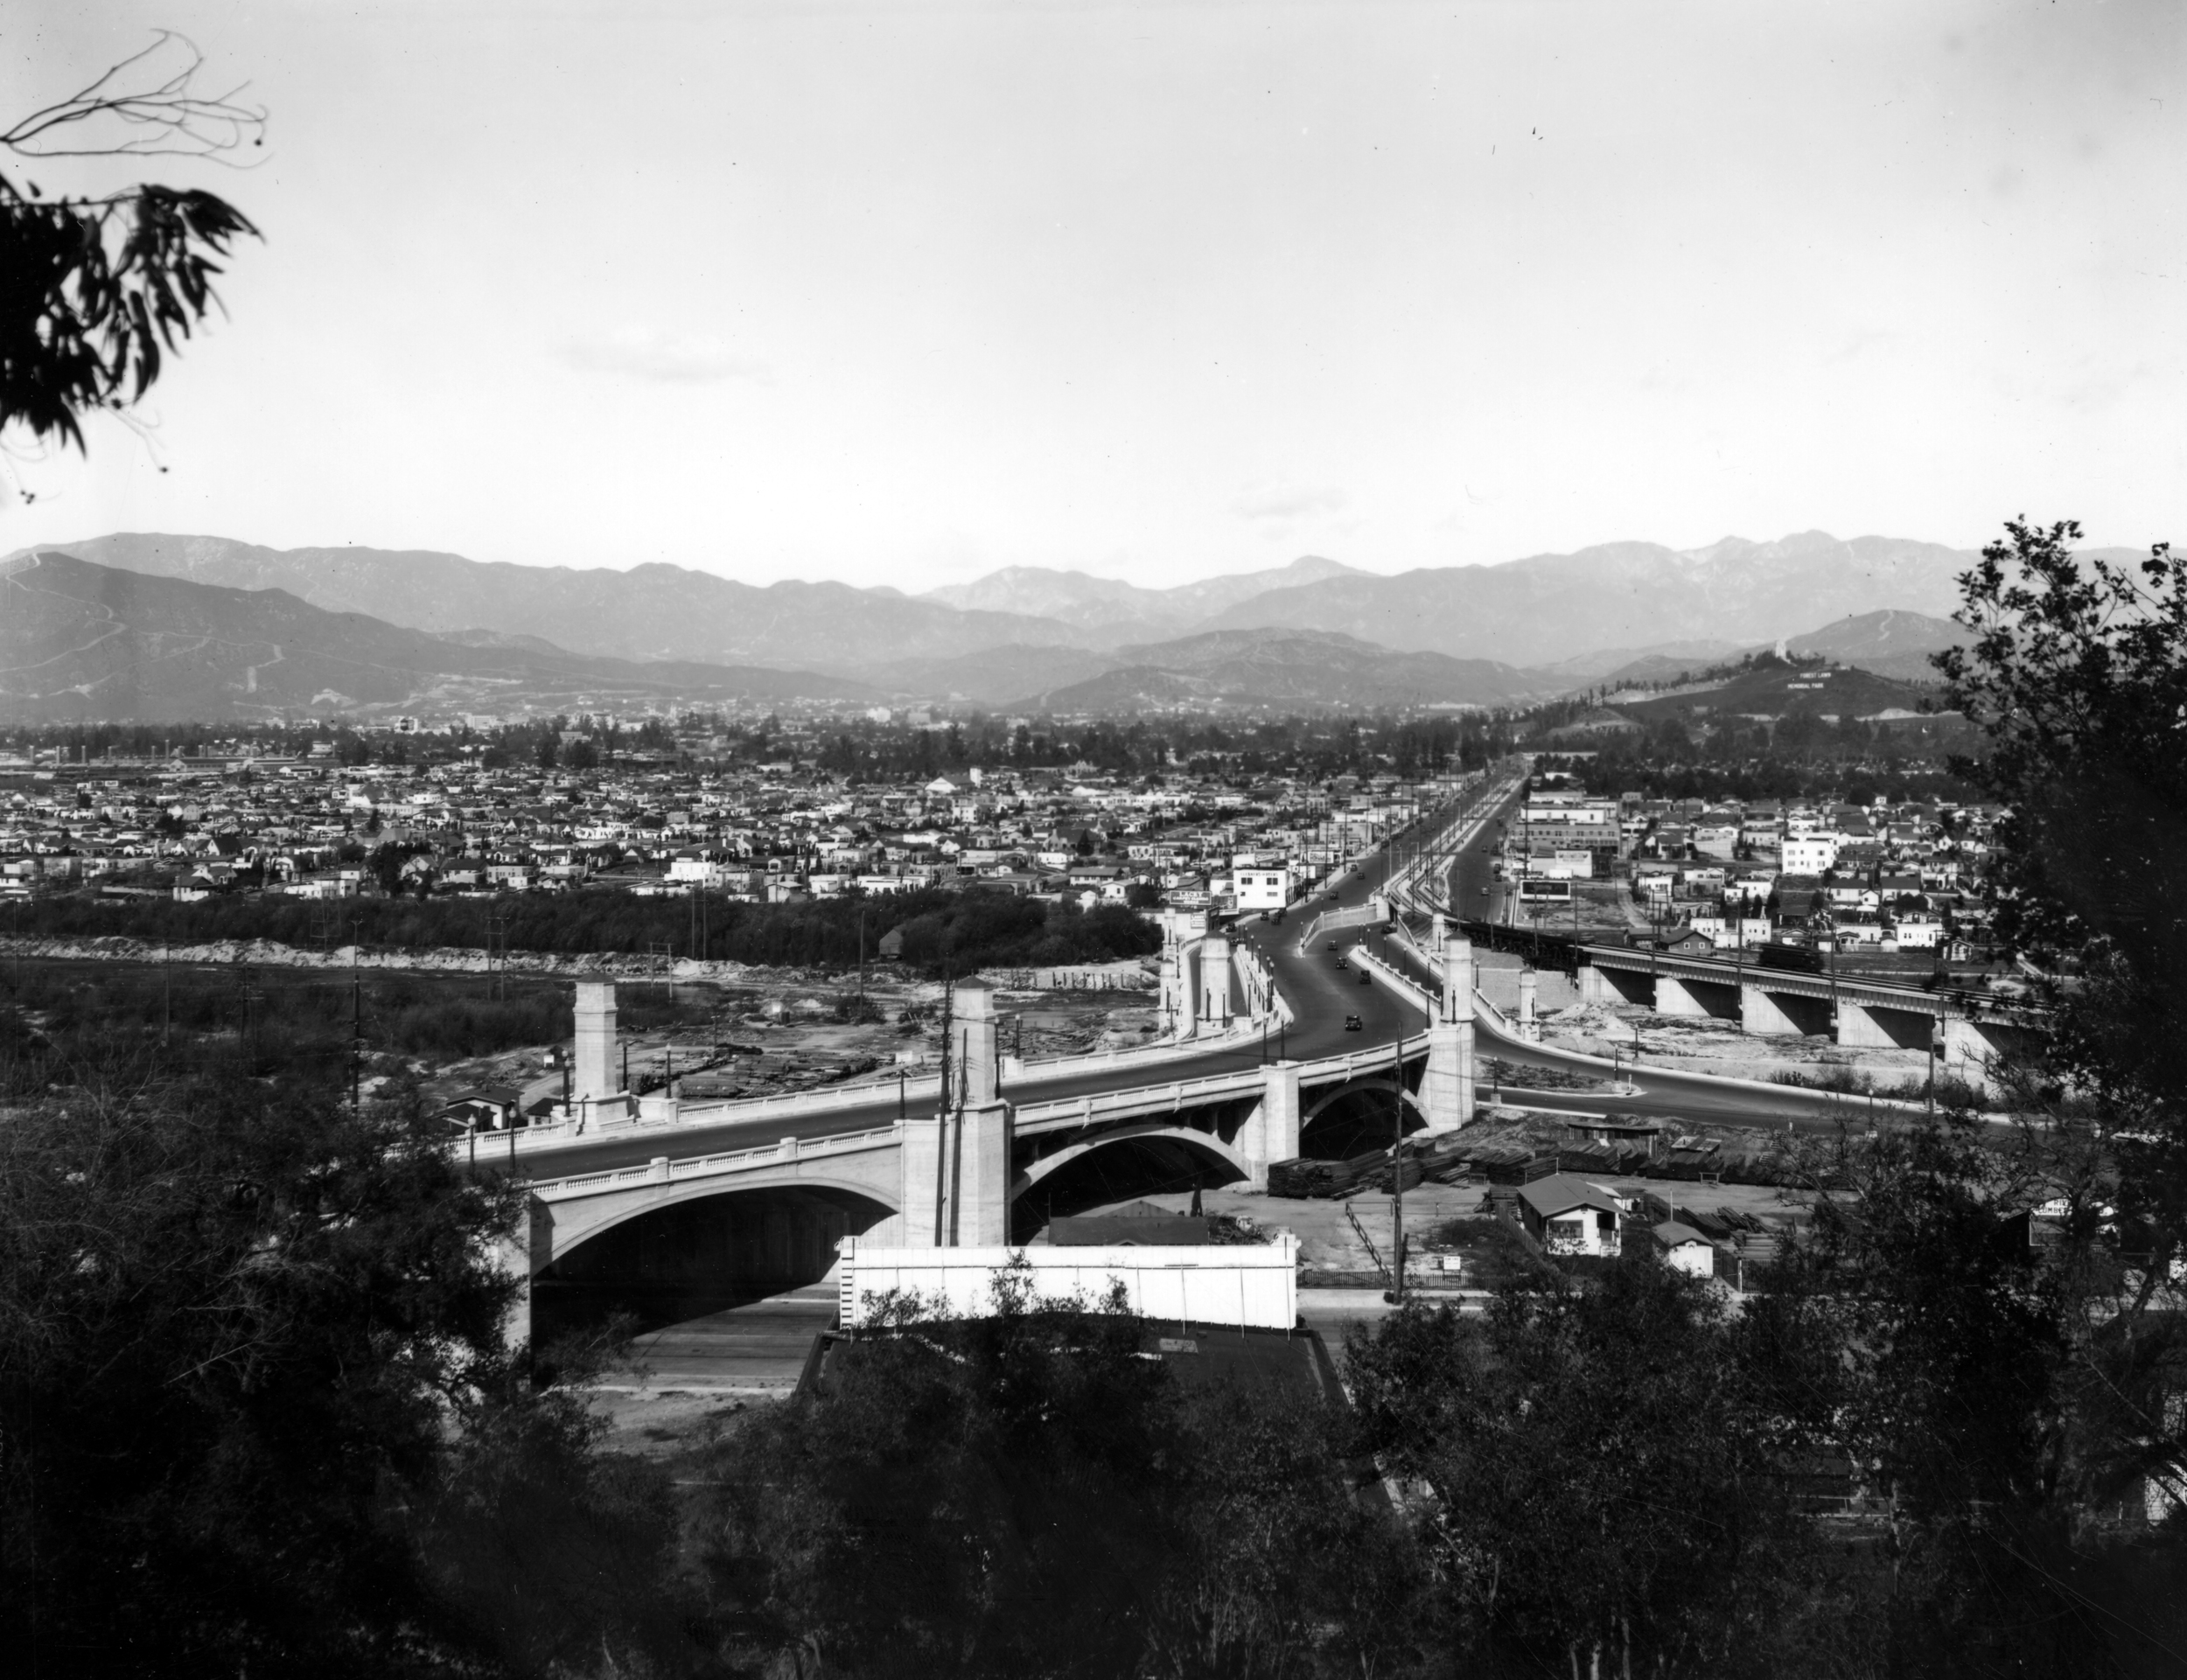 View of Atwater Village and the Hyperion Bridge, 1940's